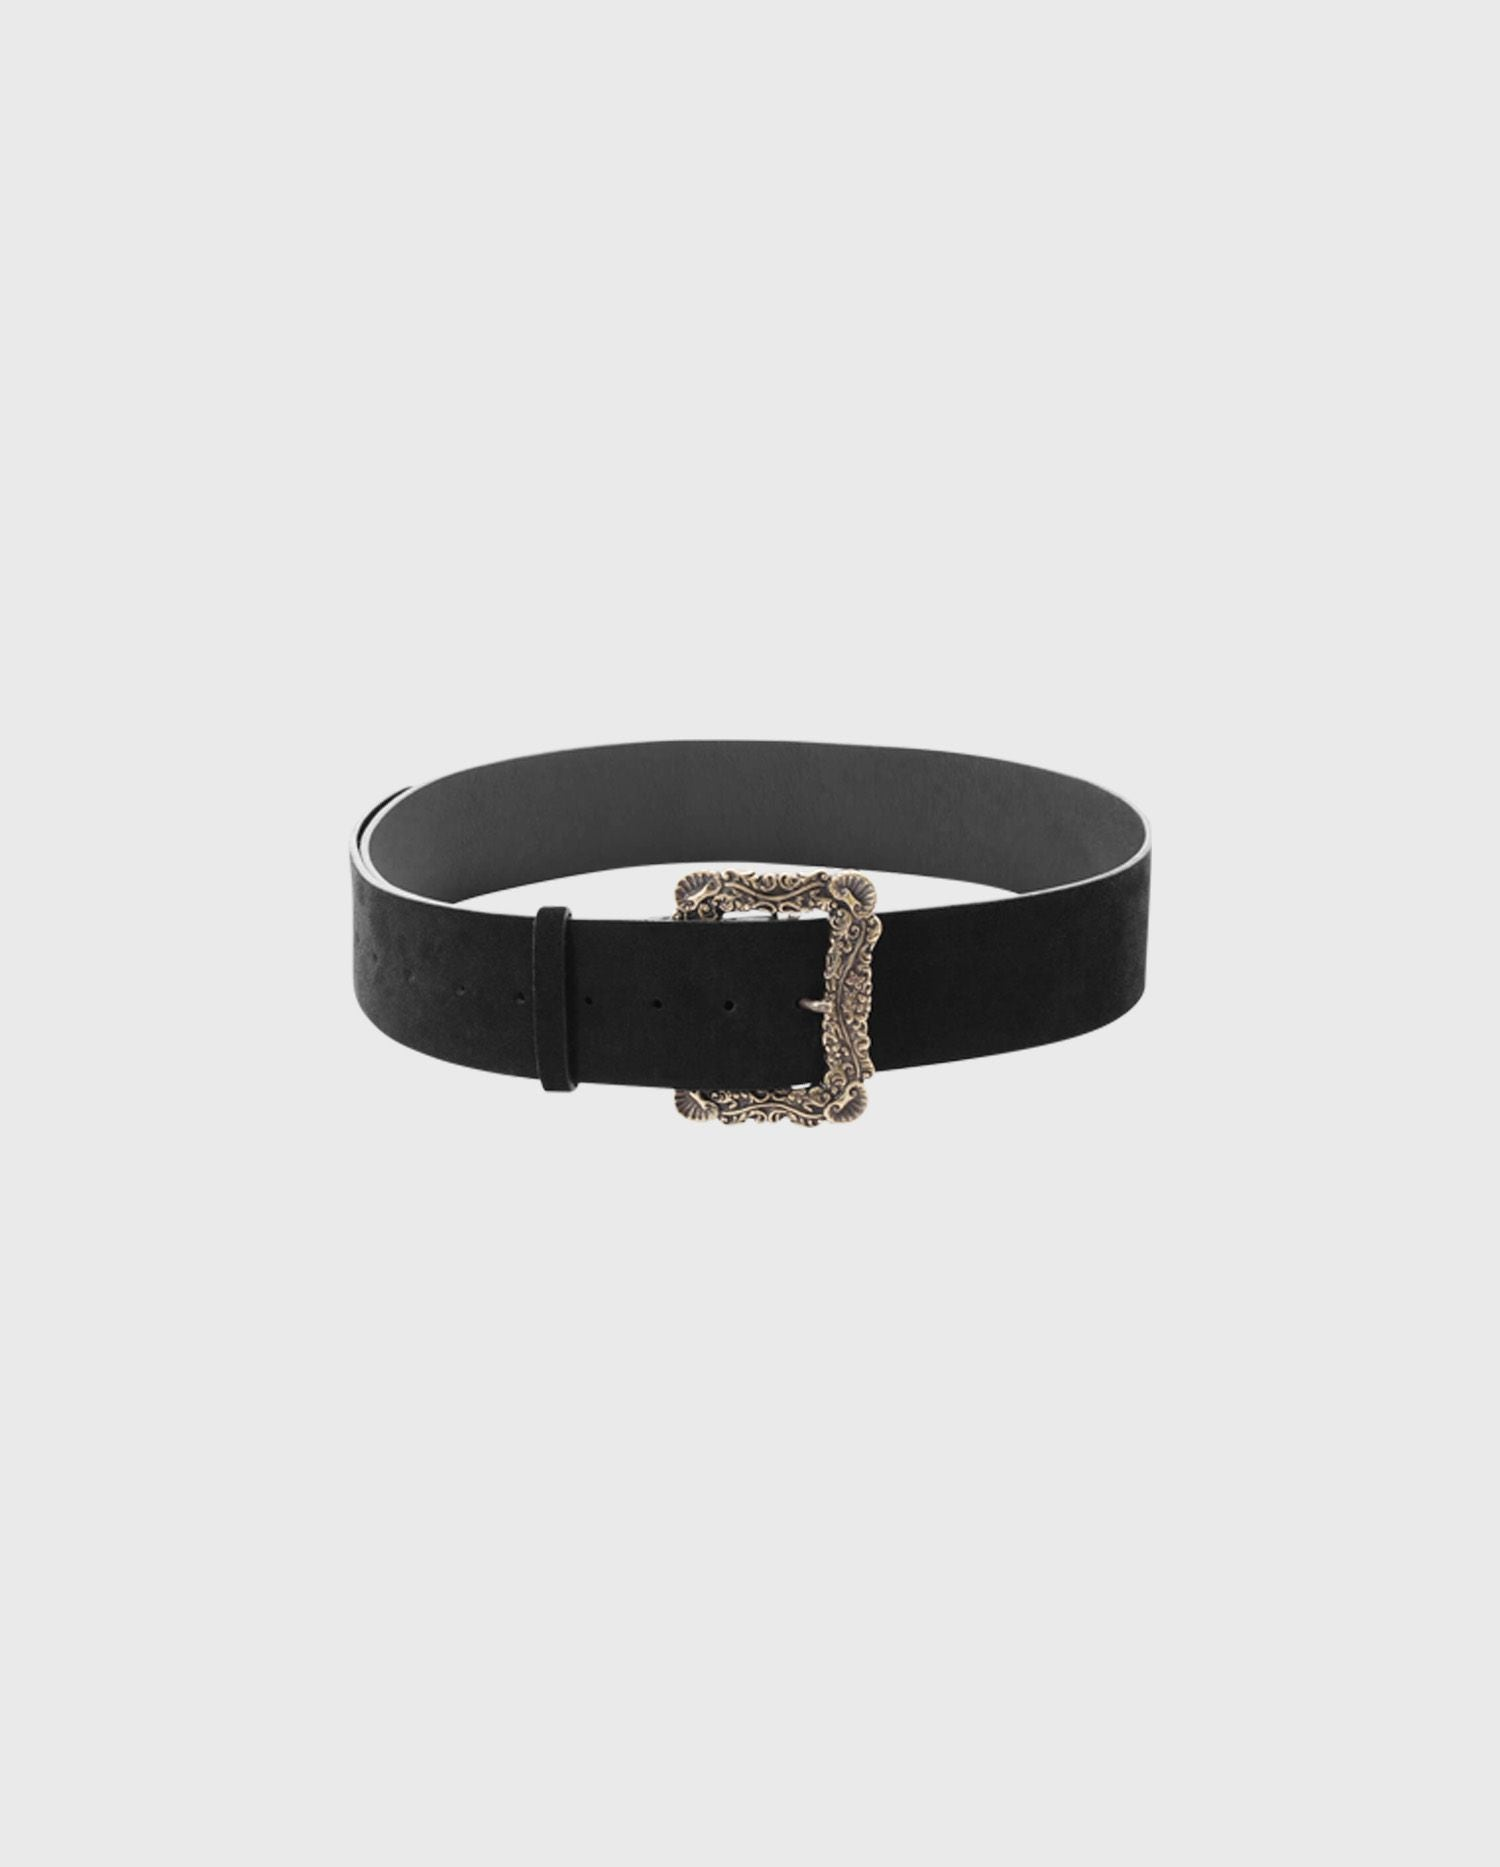 Add the OCONOR leather belt with baroque metal antique detailing to your wardrobe